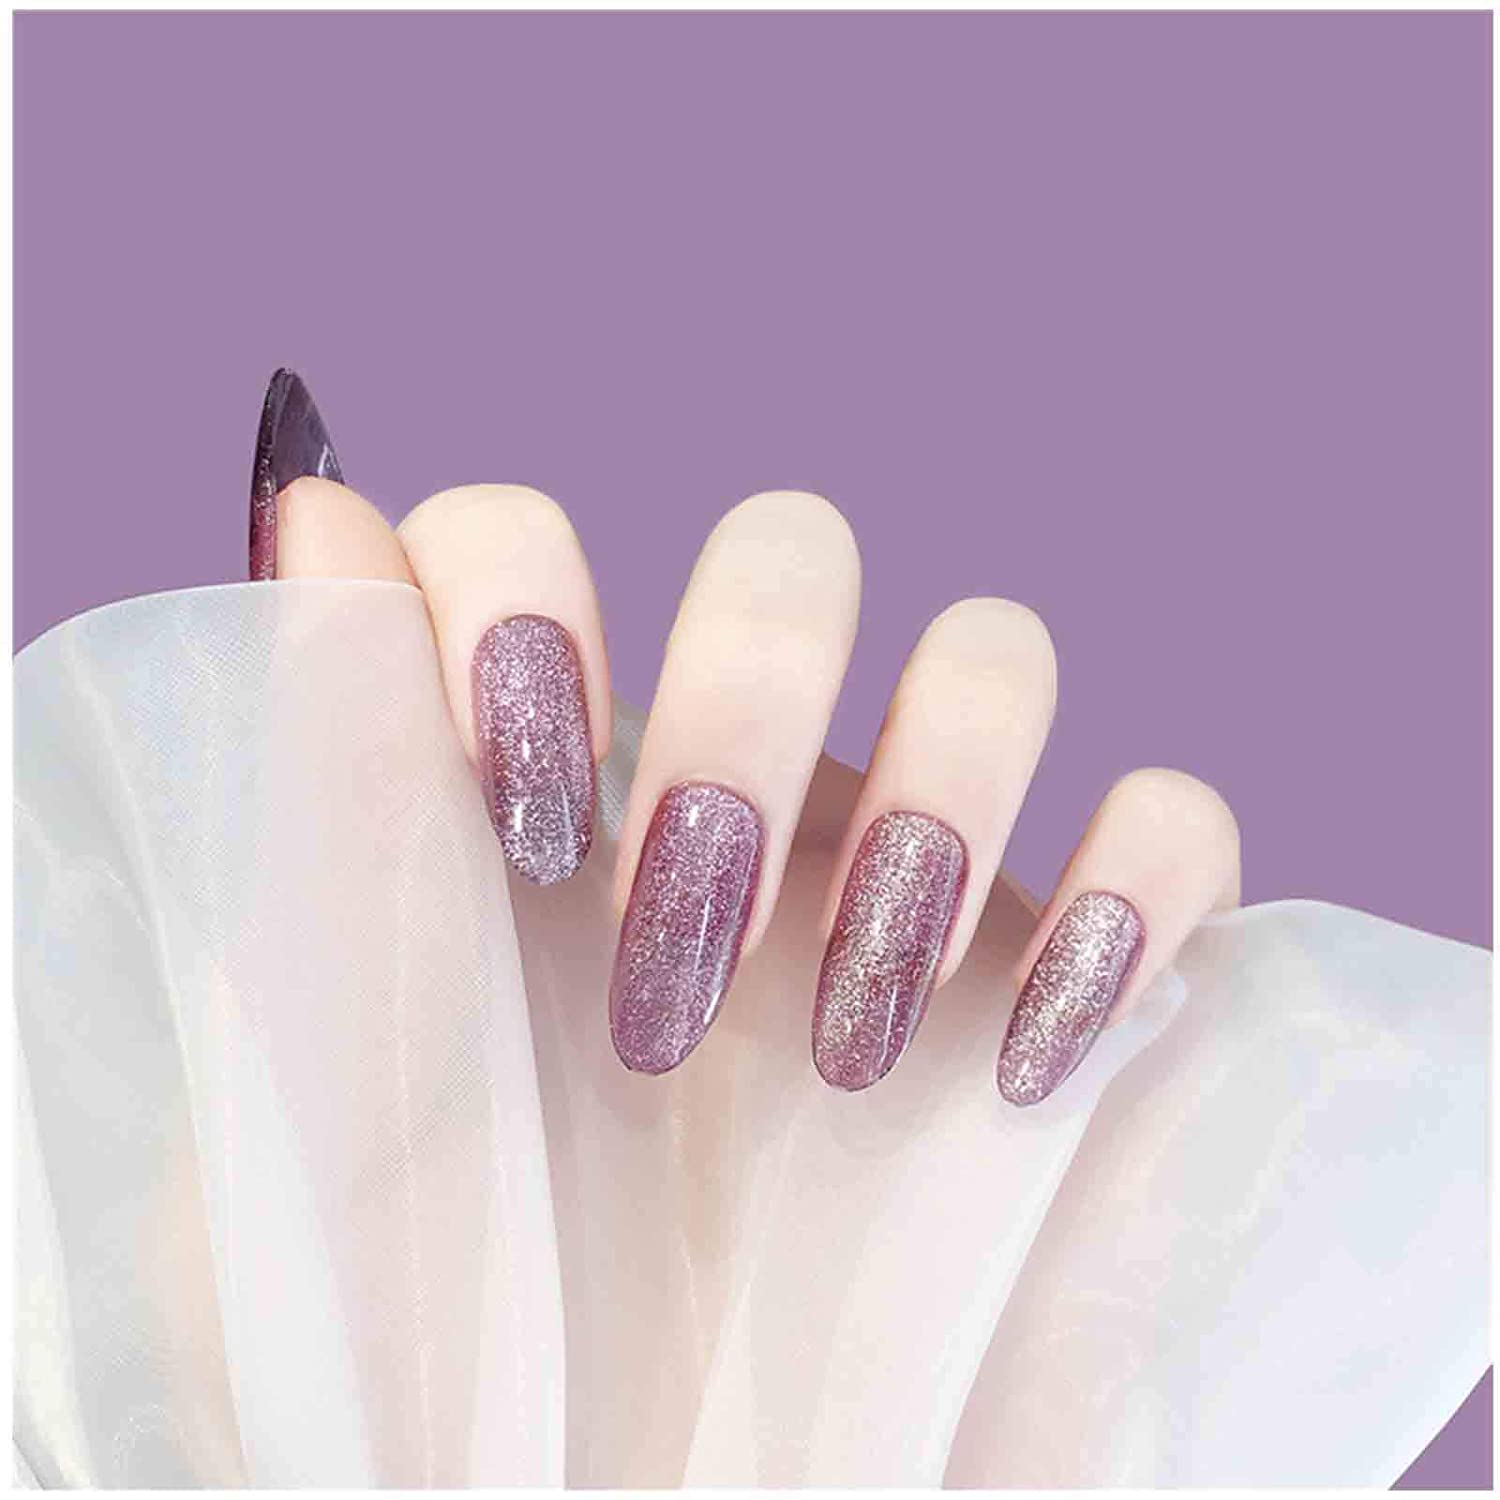 Olbye Shining Cat Eye Opening large release sale Fake Max 47% OFF Nails Long on Press Glitter Sol